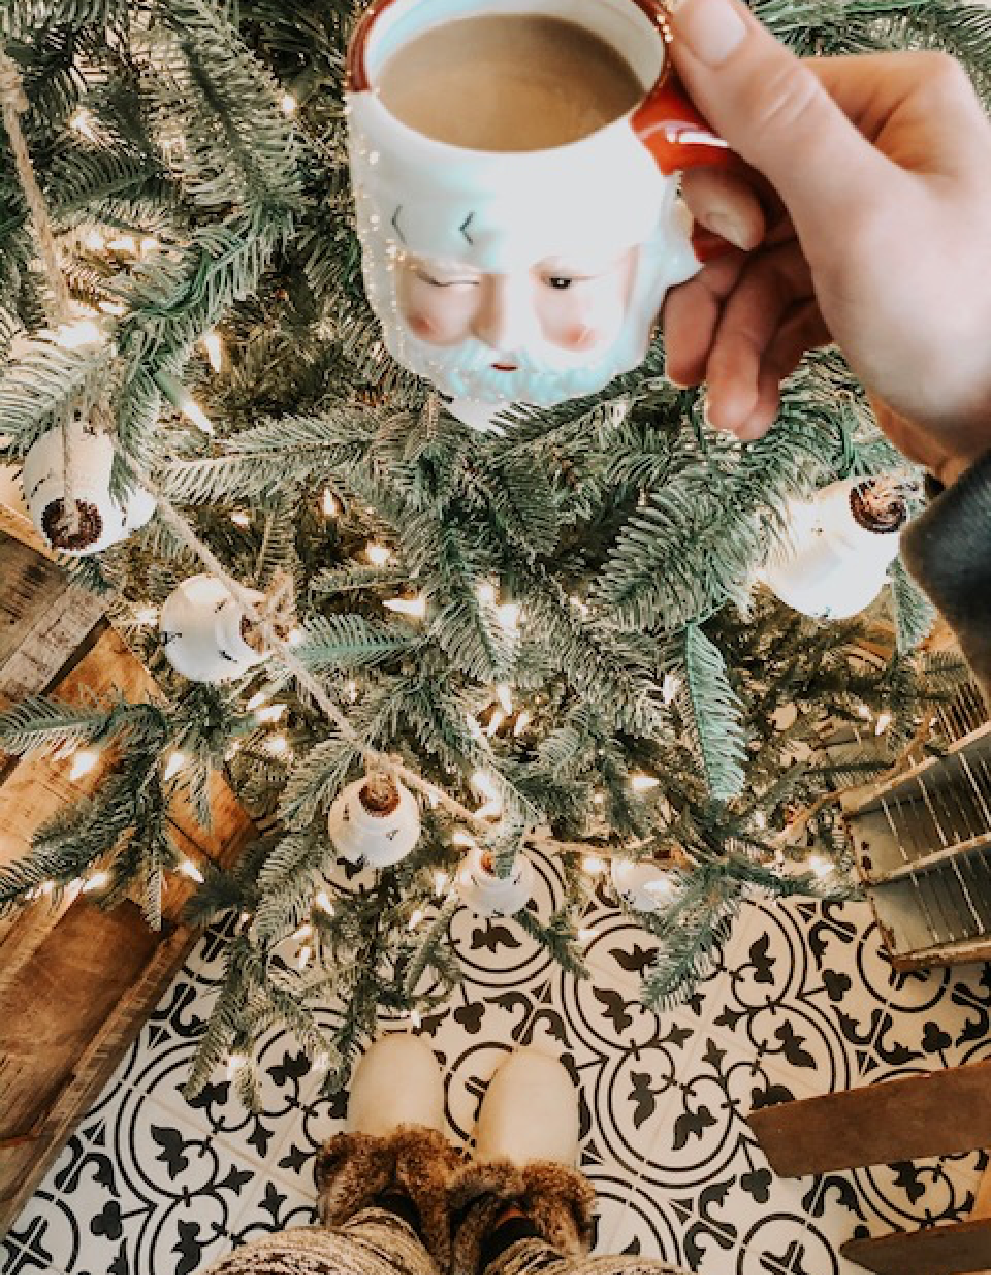 Santa Claus mug filled with coffee in front of a beautifully decorated Christmas tree.